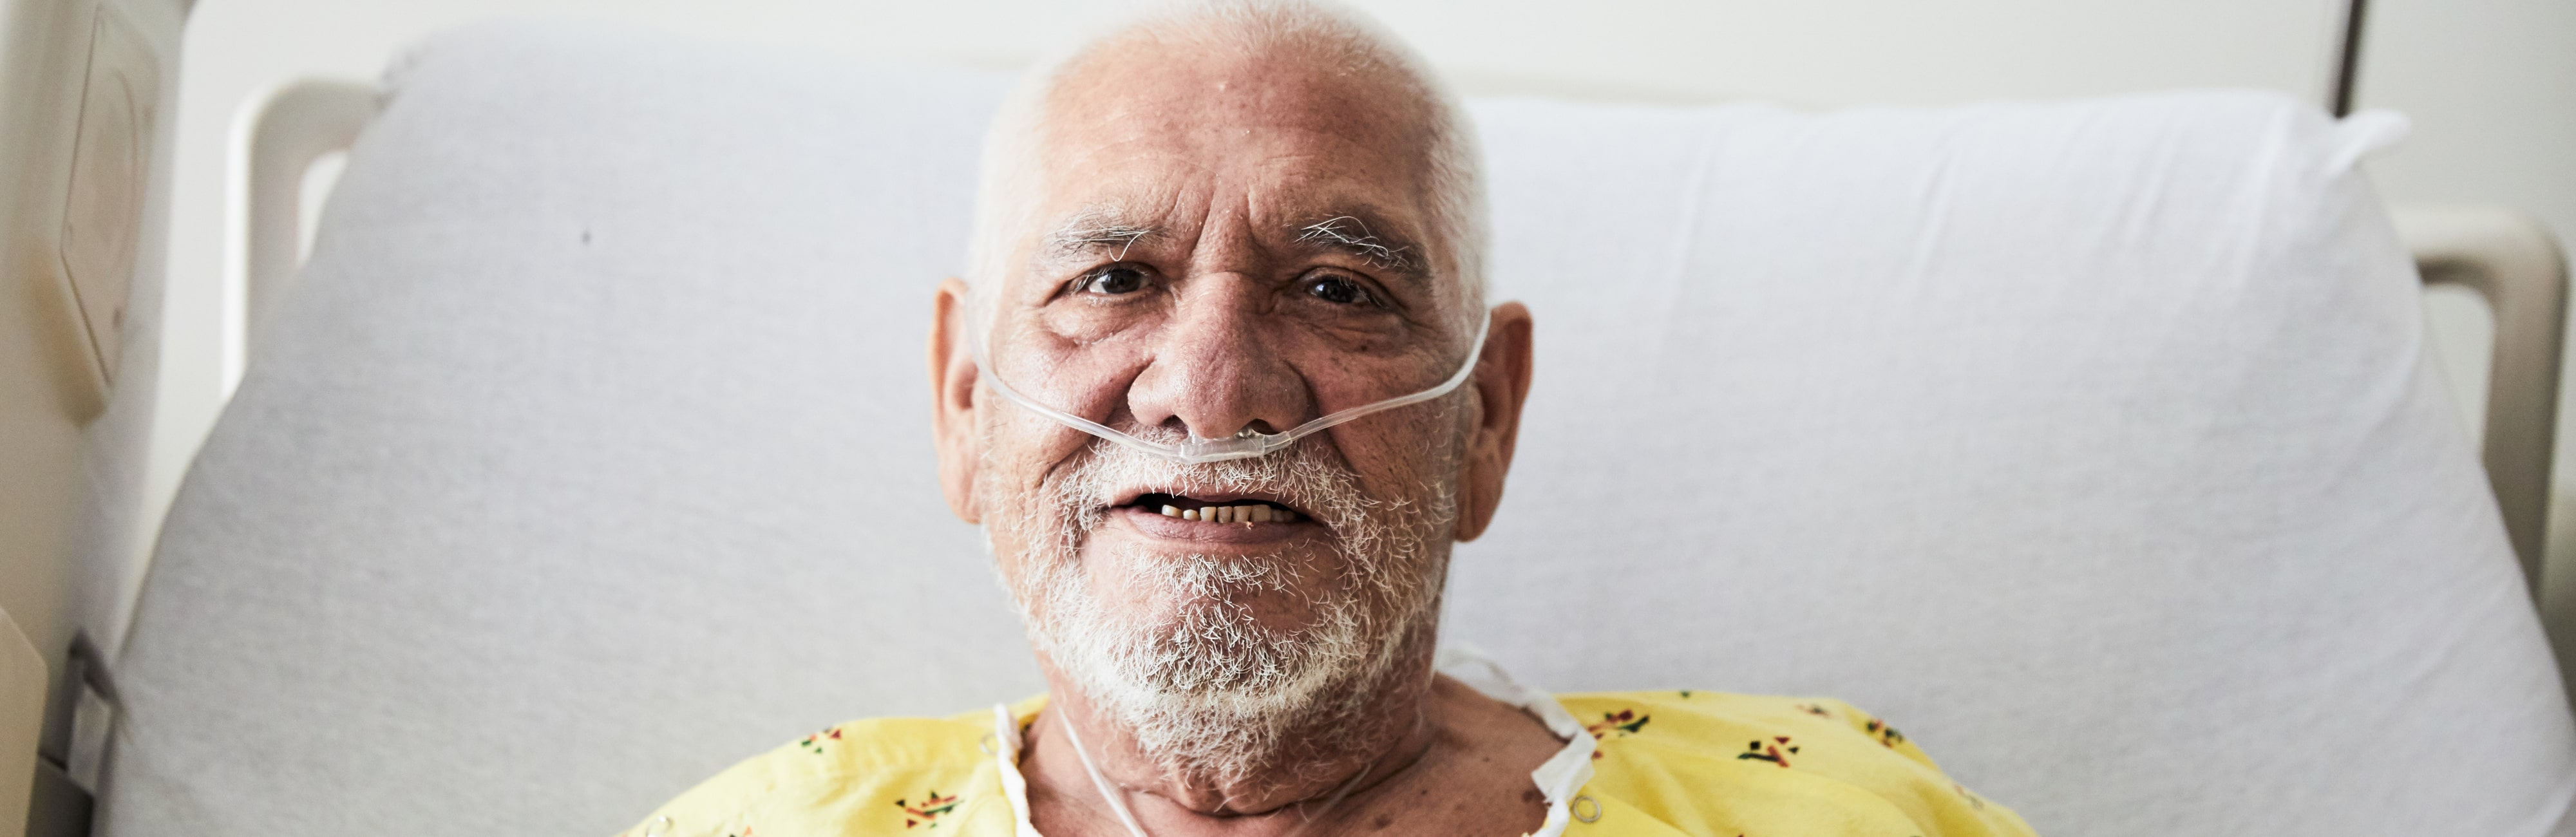 Elderly man smiling and sitting in a hospital bed